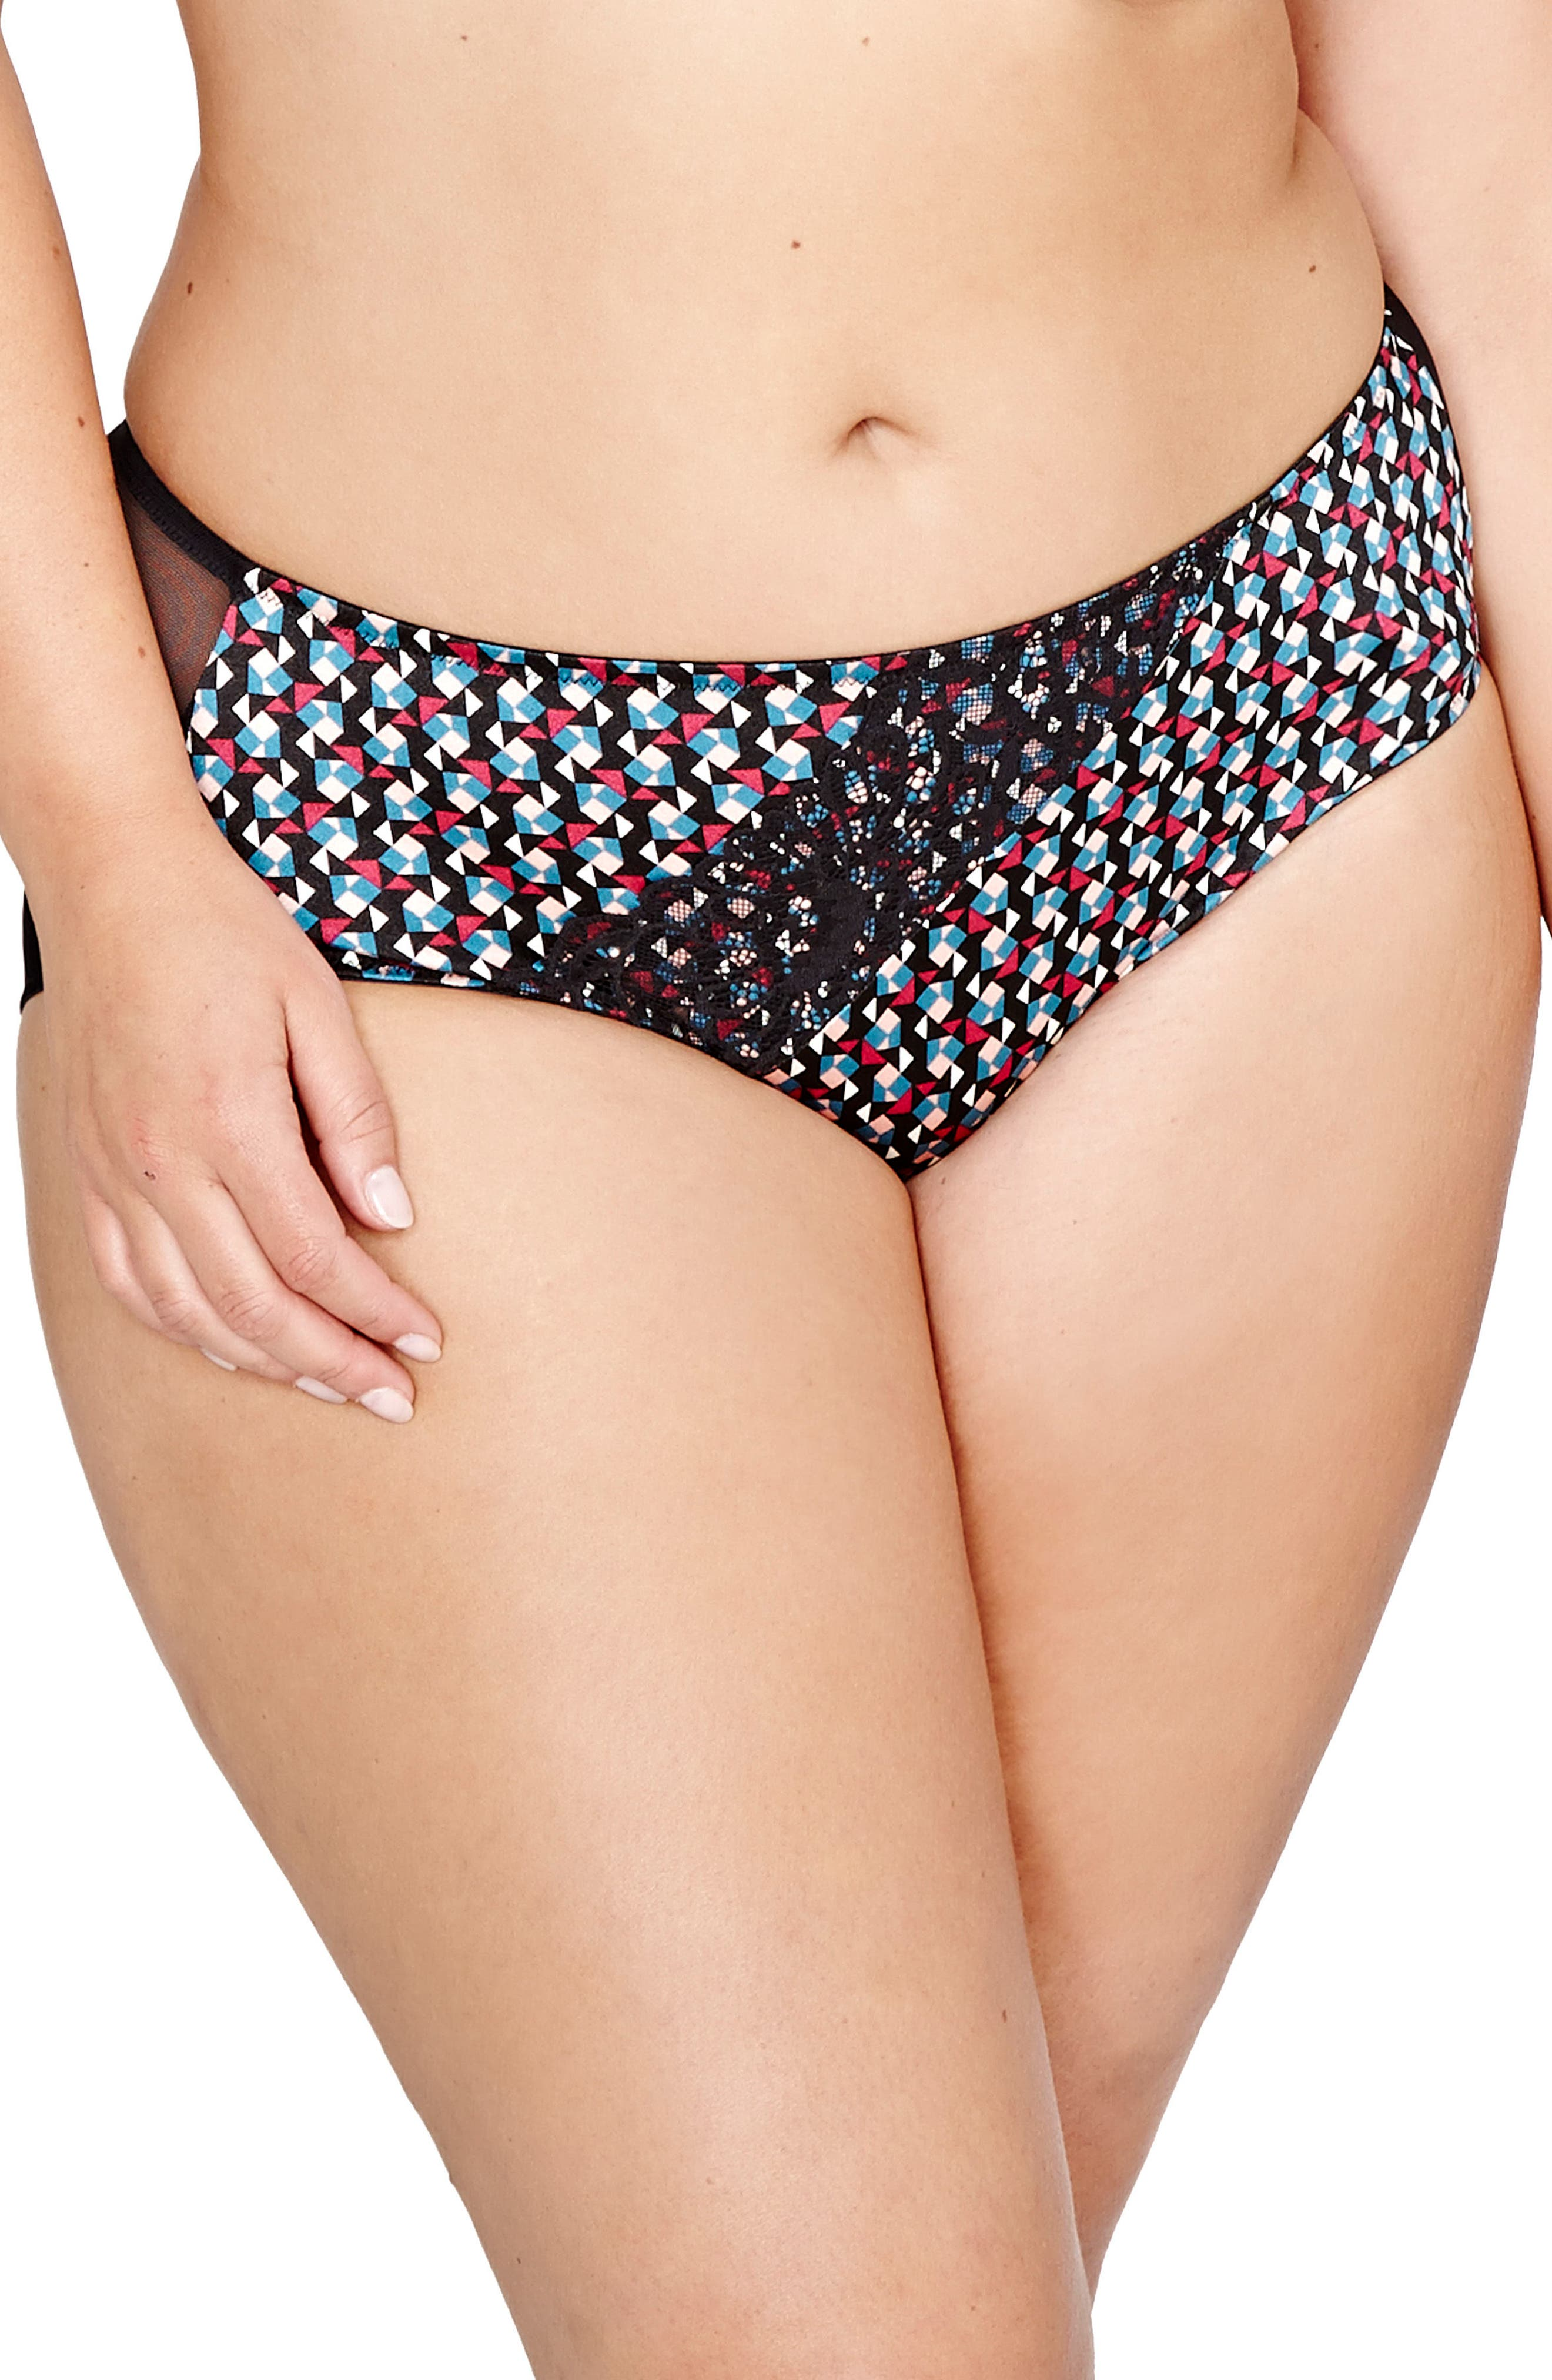 Alternate Image 1 Selected - Déesse Lingerie Teddy Girl High Cut Panties (Plus Size)